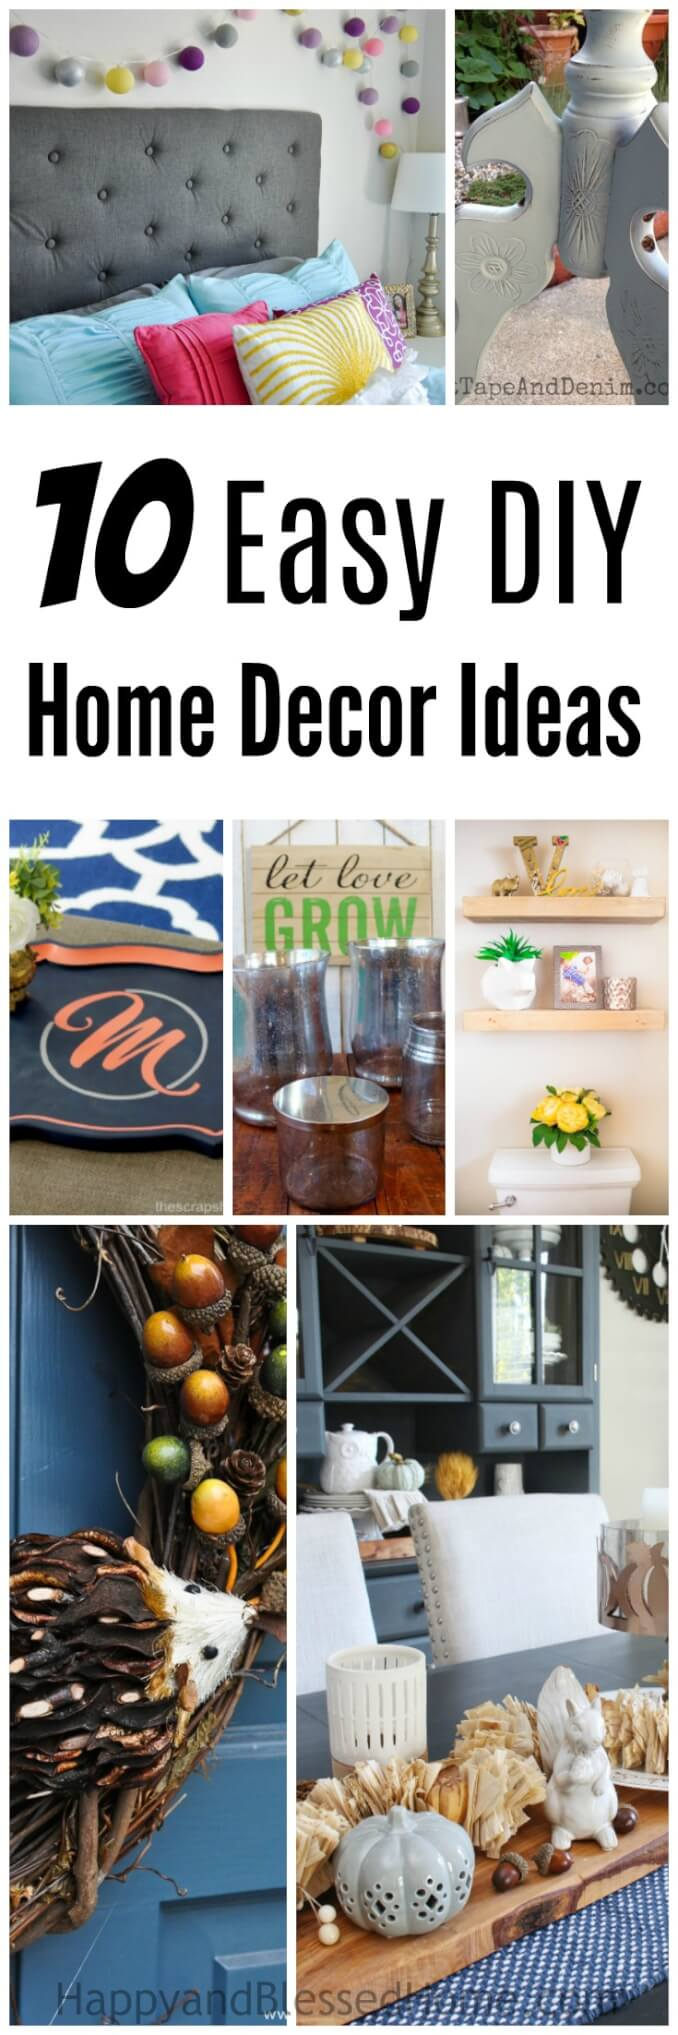 10 Easy DIY Home Decor Ideas